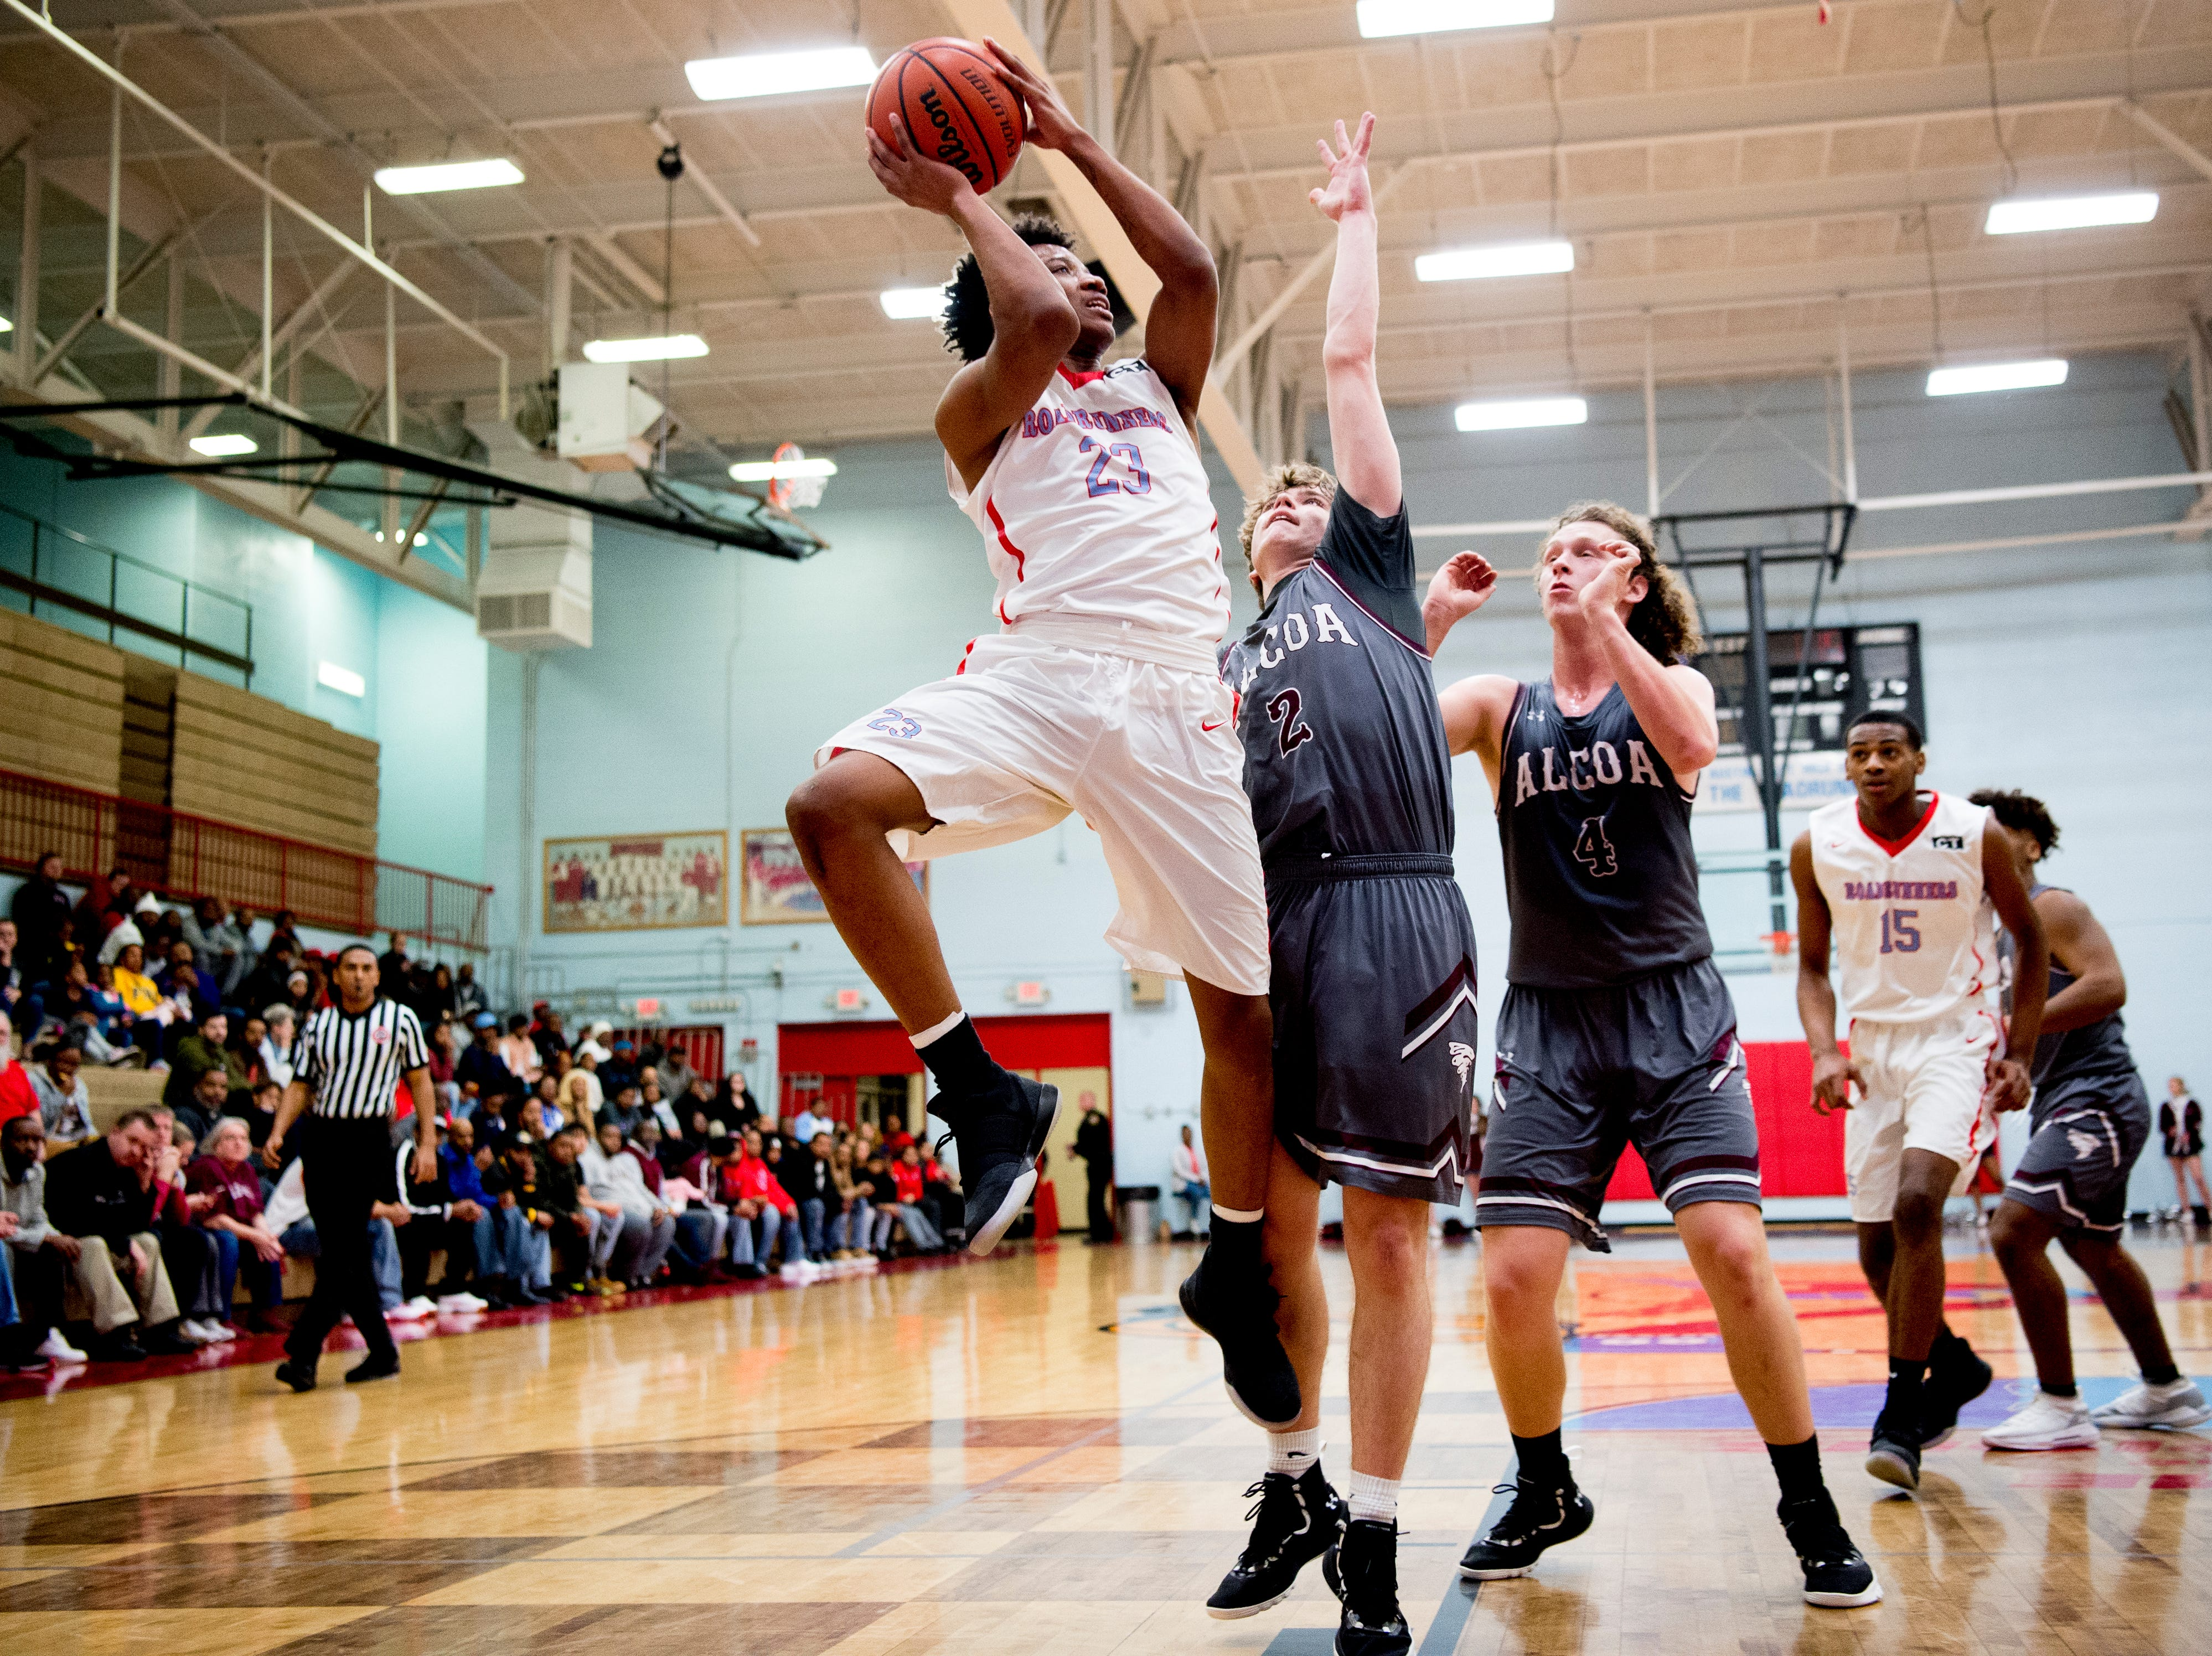 Austin-East's LaRon Dixon (23) shoots the ball as Alcoa's during a game between Austin-East and Alcoa at Austin-East High School in Knoxville, Tennessee on Friday, January 18, 2019.